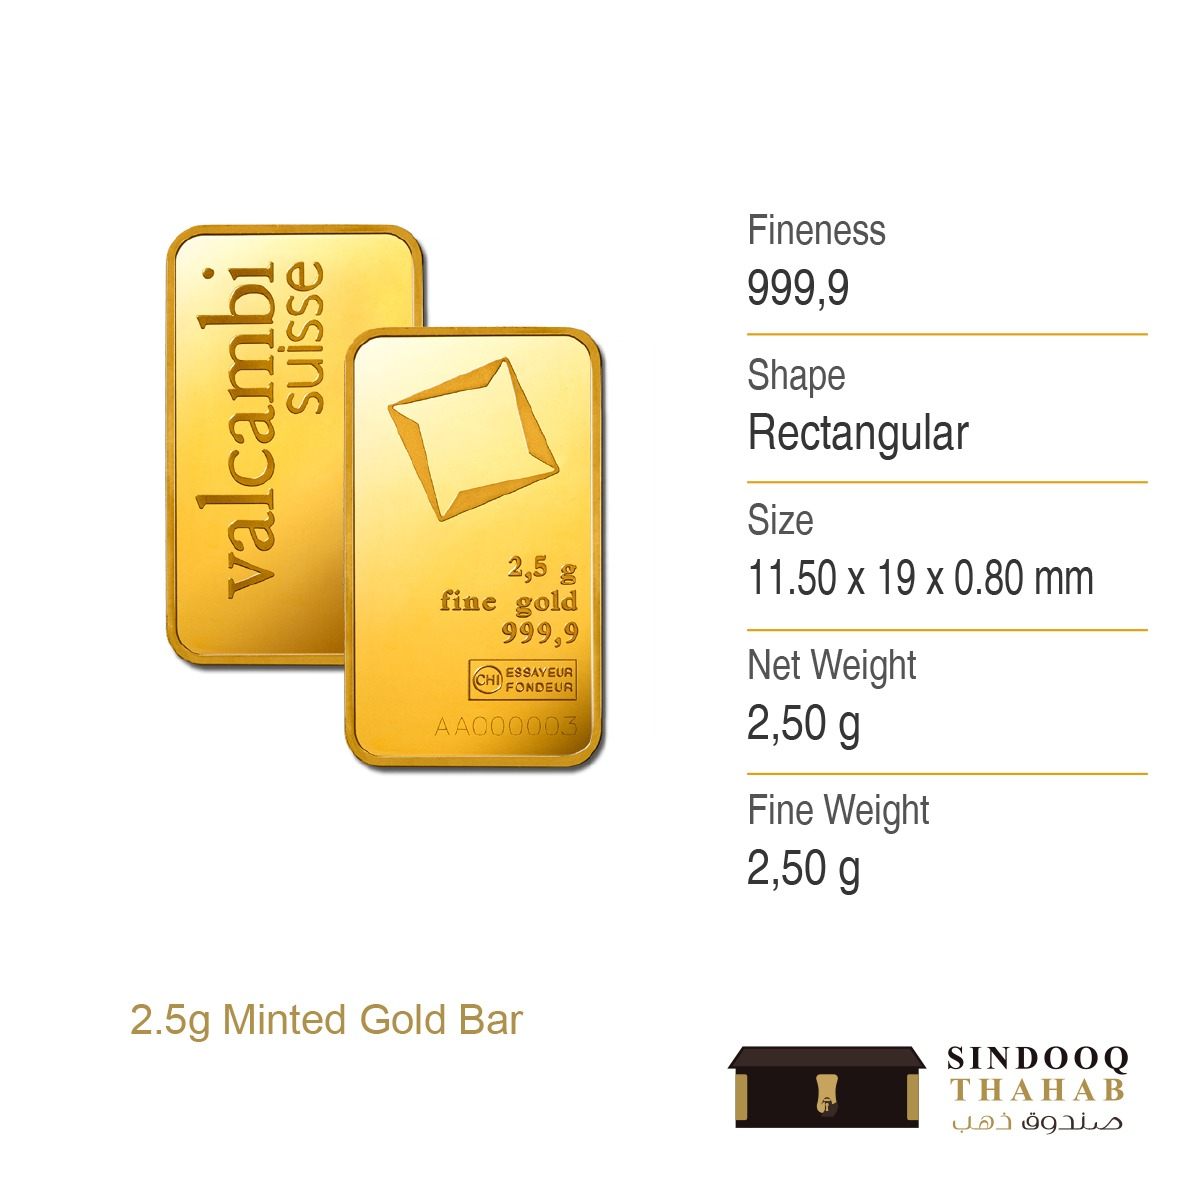 2.5g Minted Gold Bar